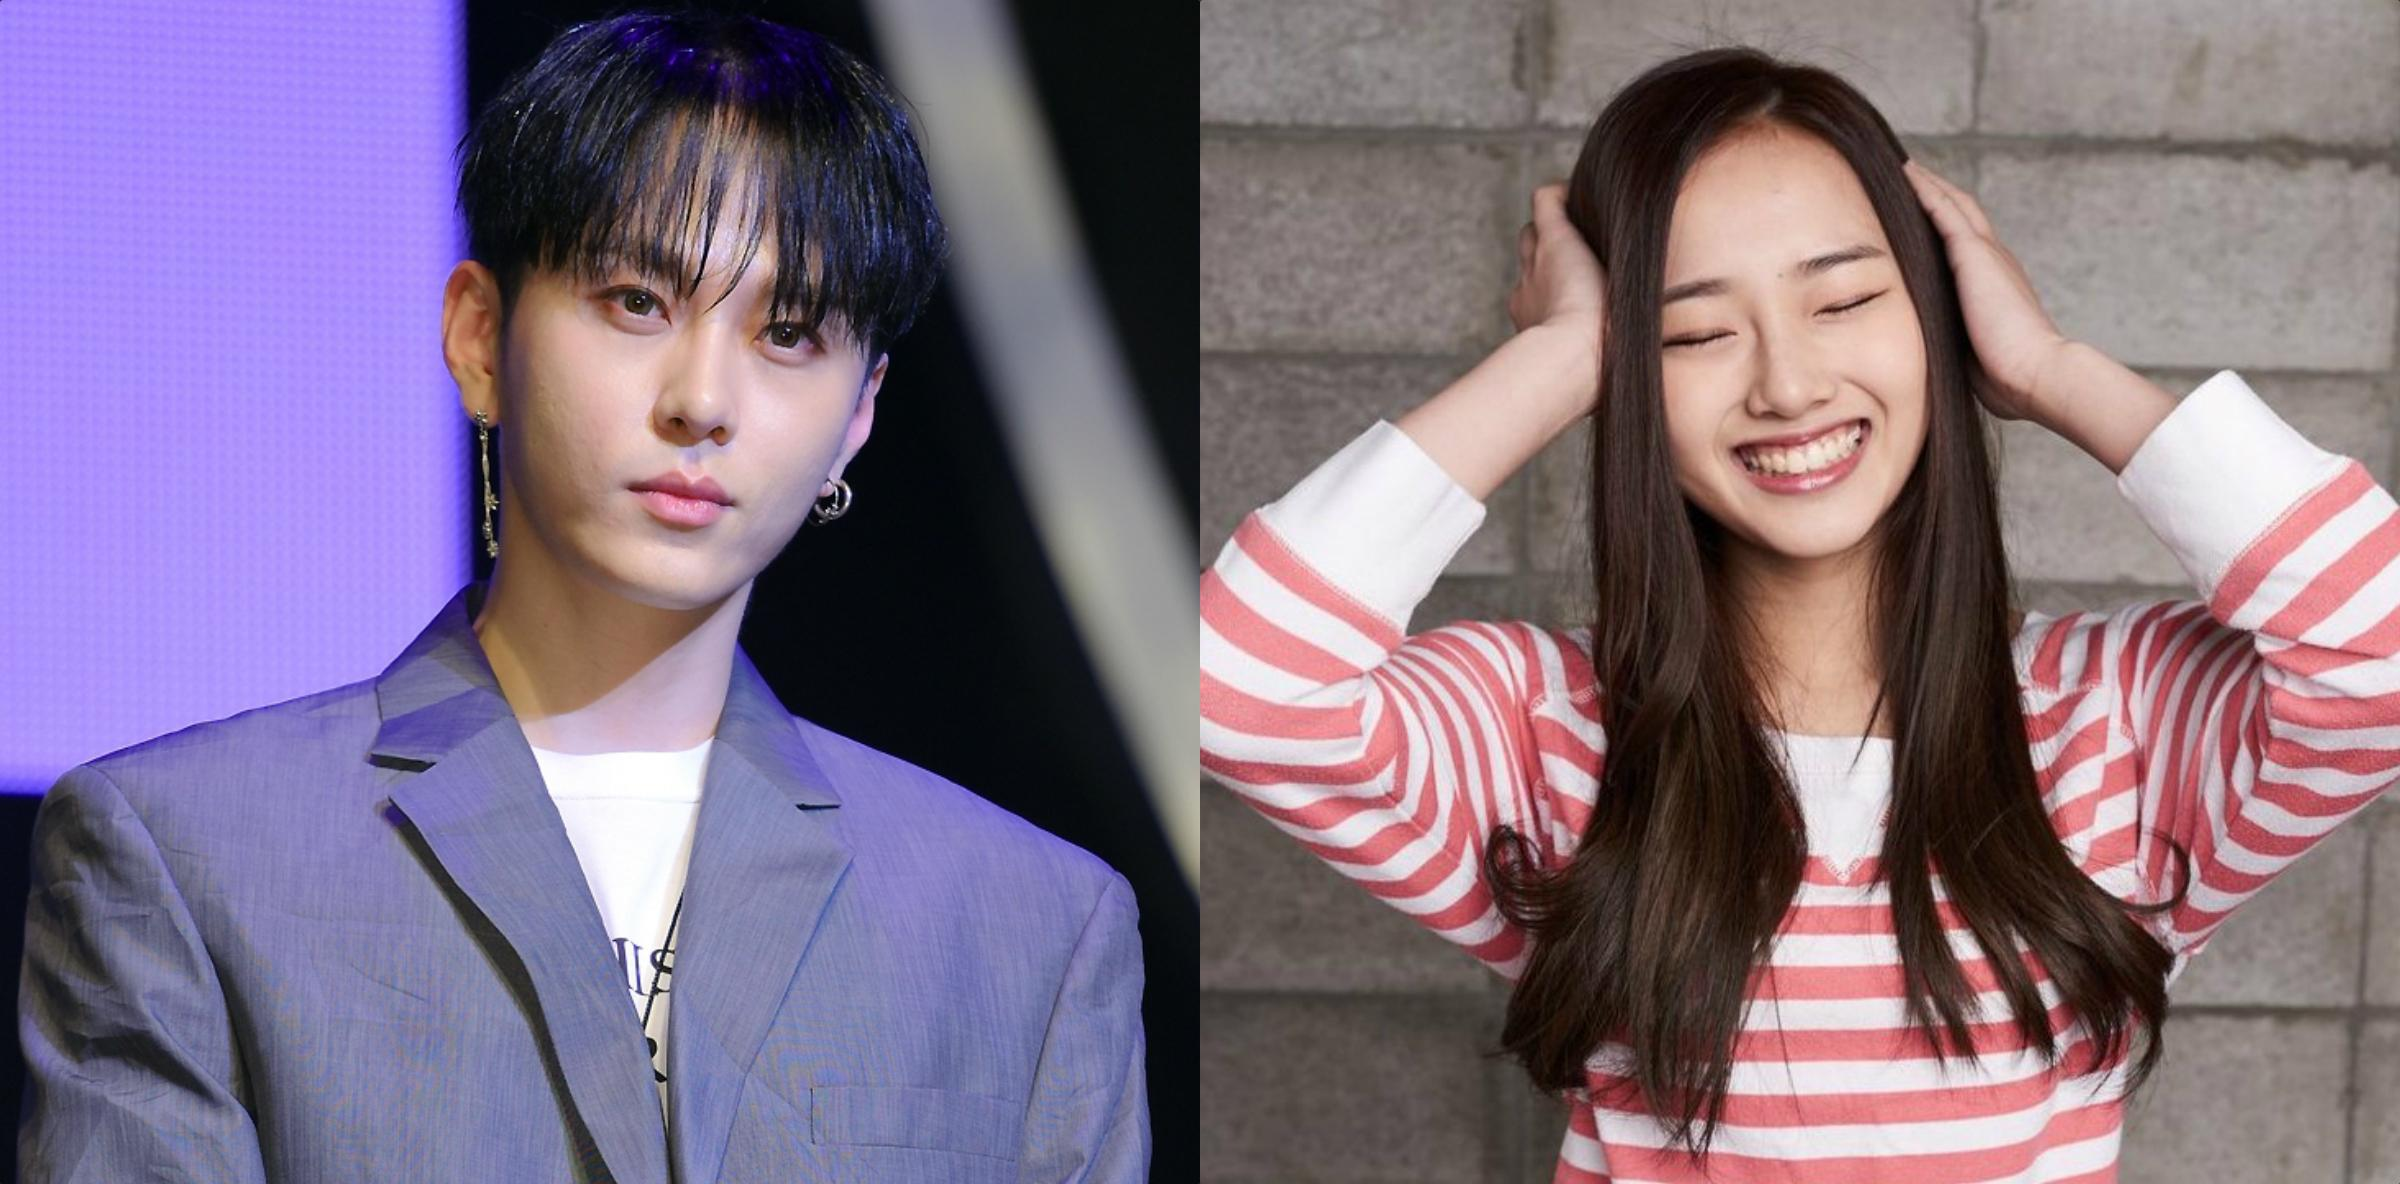 HIGHLIGHTs Junhyung Helped Produce Kriesha Trius Debut Album